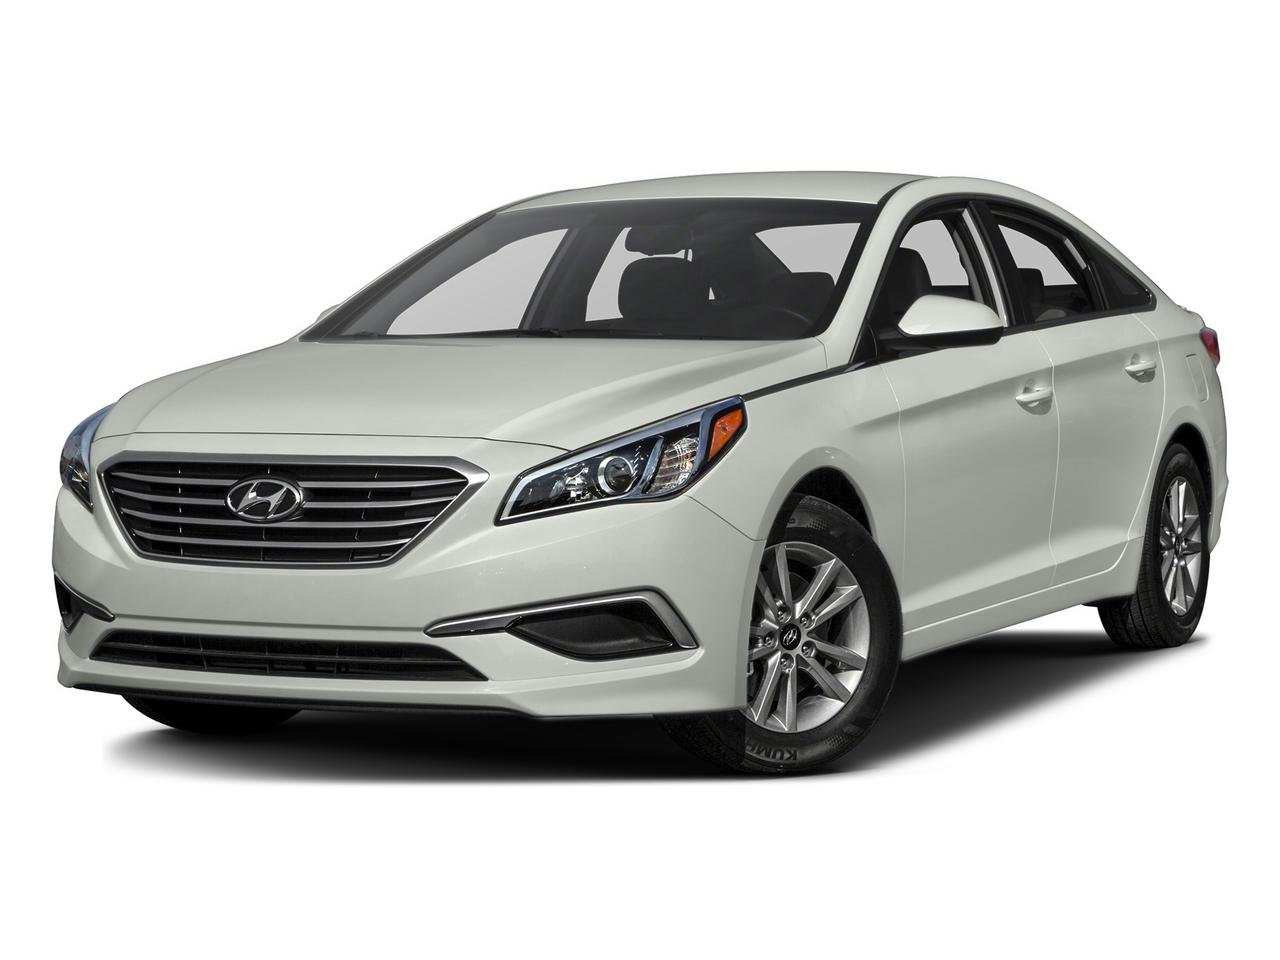 2016 Hyundai Sonata Vehicle Photo in Trevose, PA 19053-4984